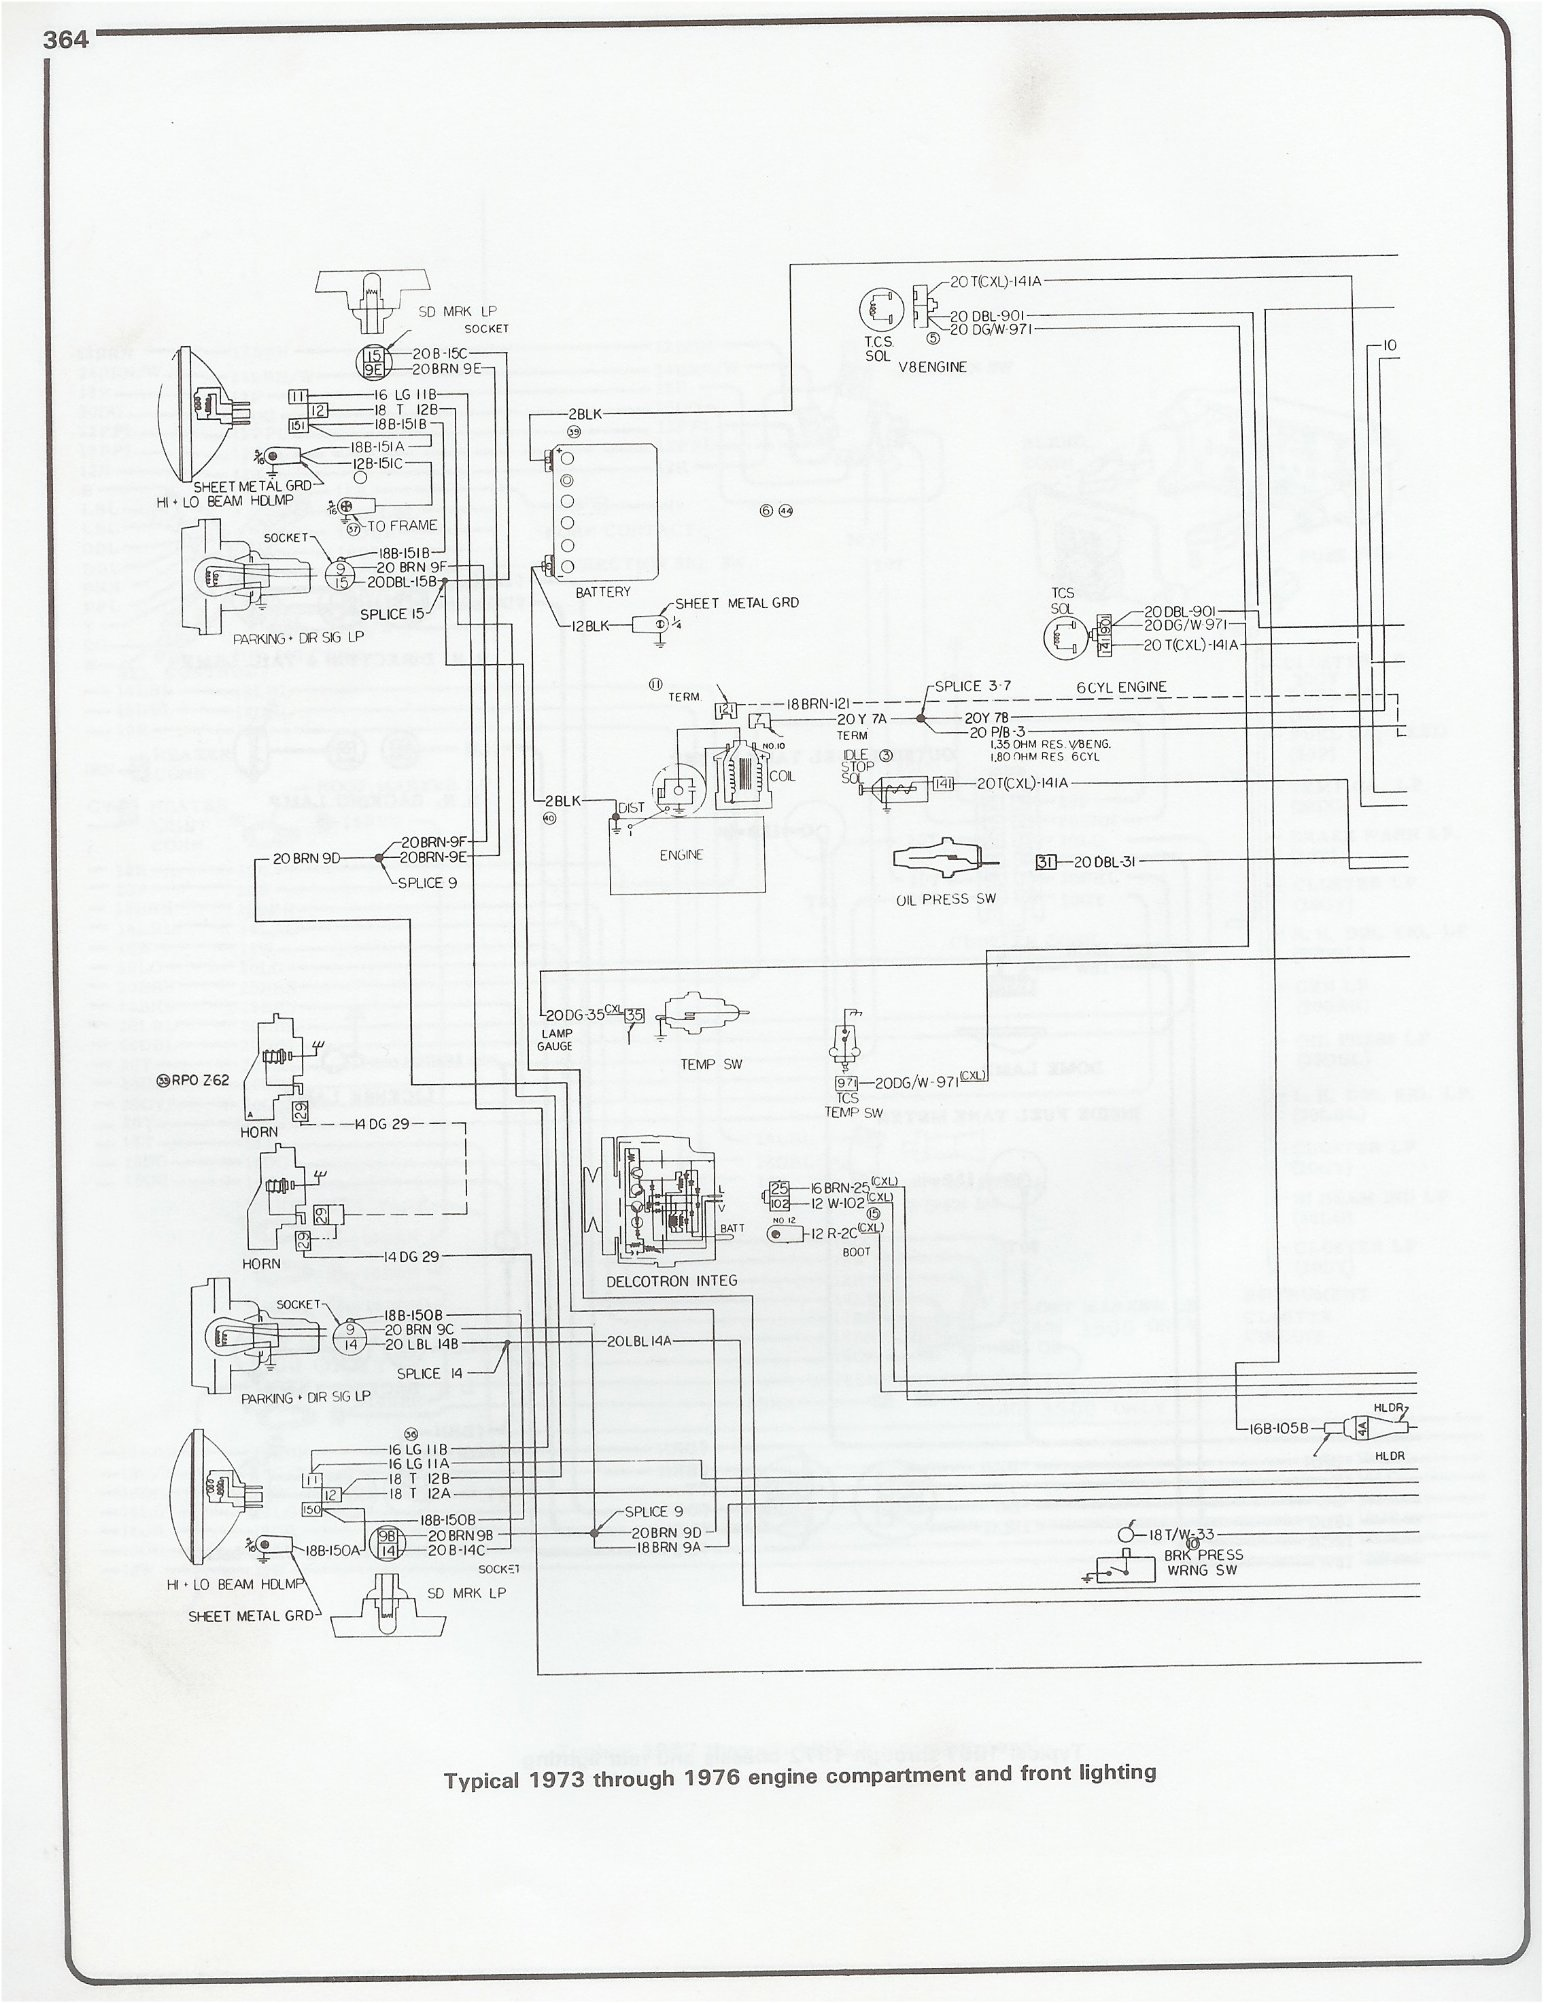 76 C10 Wiring Diagram Data Wiring Schema 1977 Corvette Wiring Harness Diagram  Fuse Box Wiring Diagram 76 Corvette